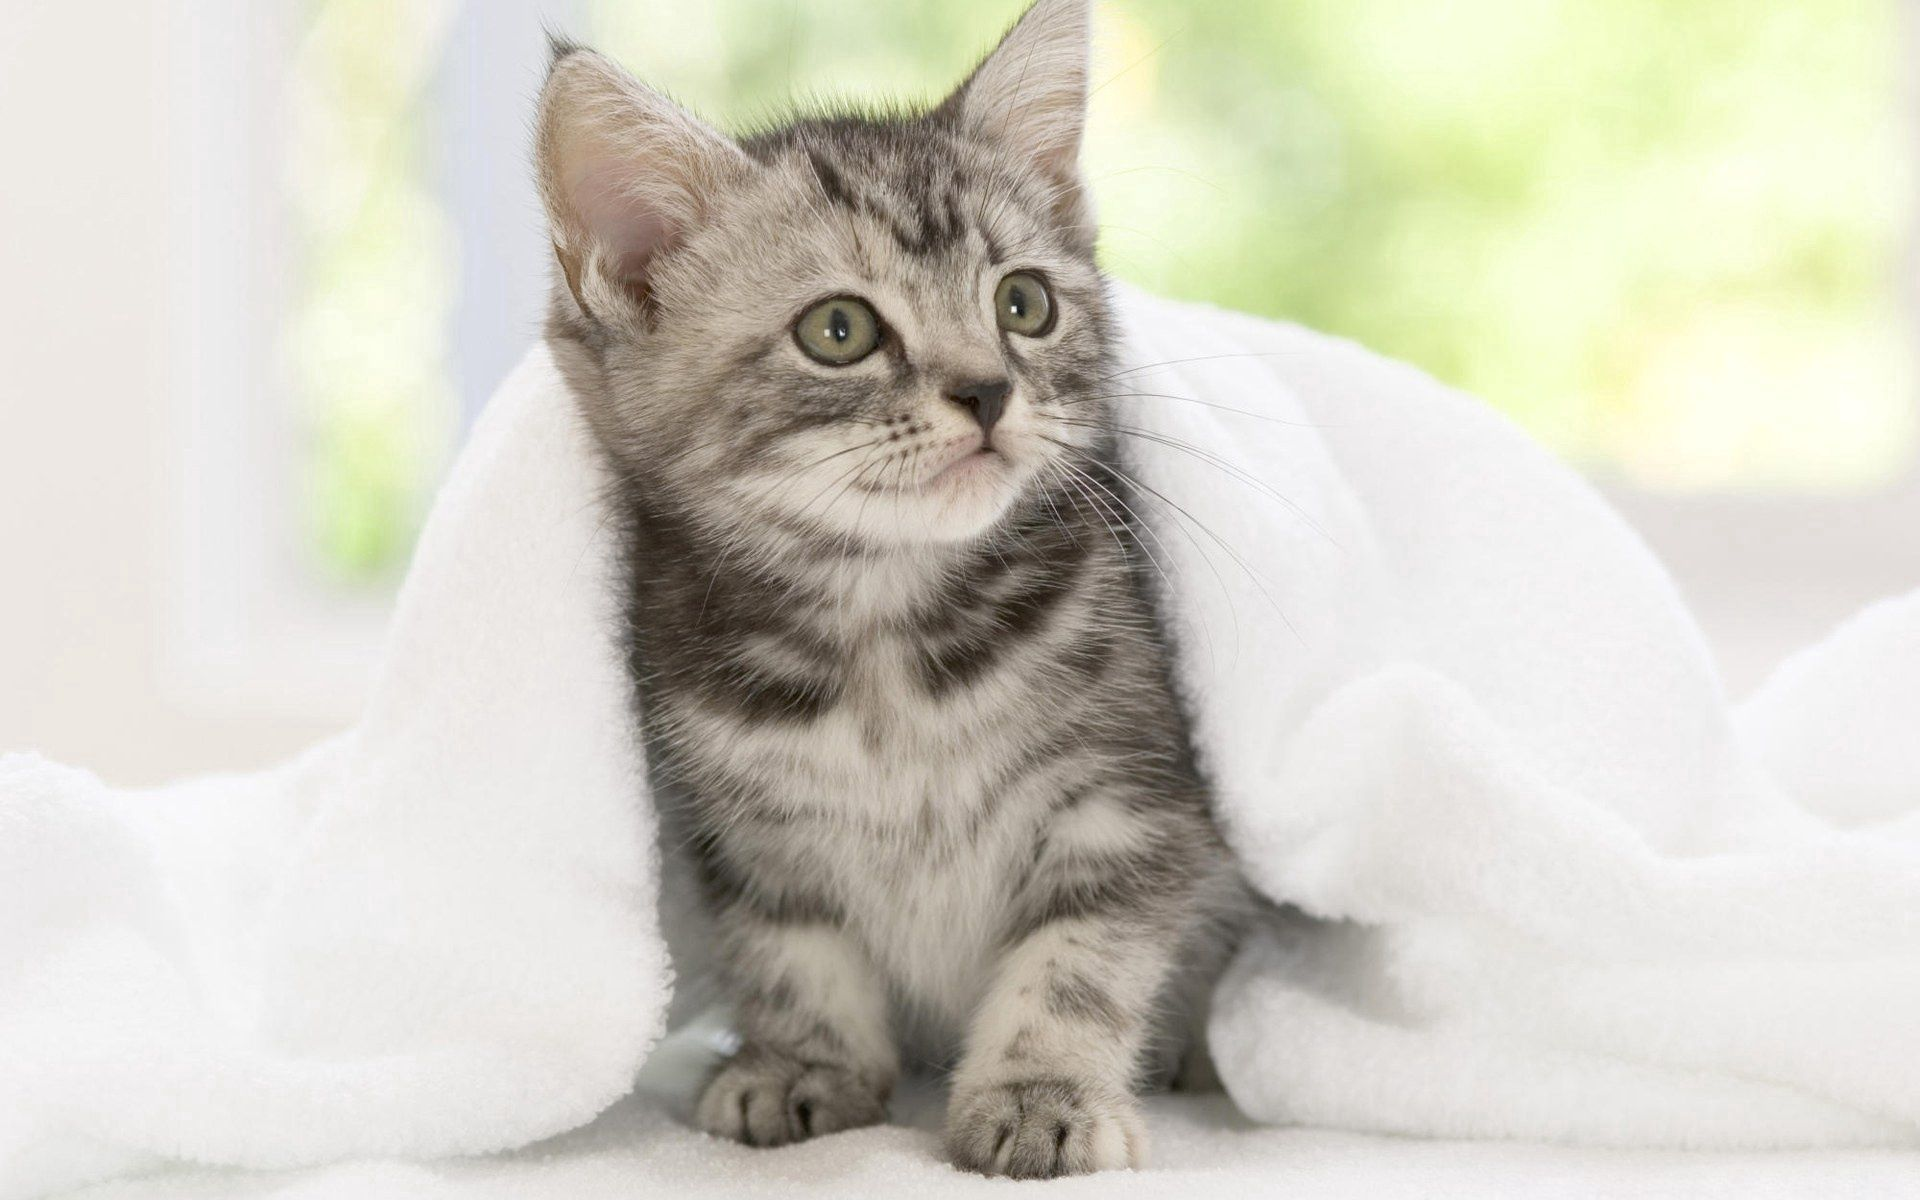 97596 download wallpaper Animals, Kitty, Kitten, Blanket, Sight, Opinion, Expectation, Waiting screensavers and pictures for free